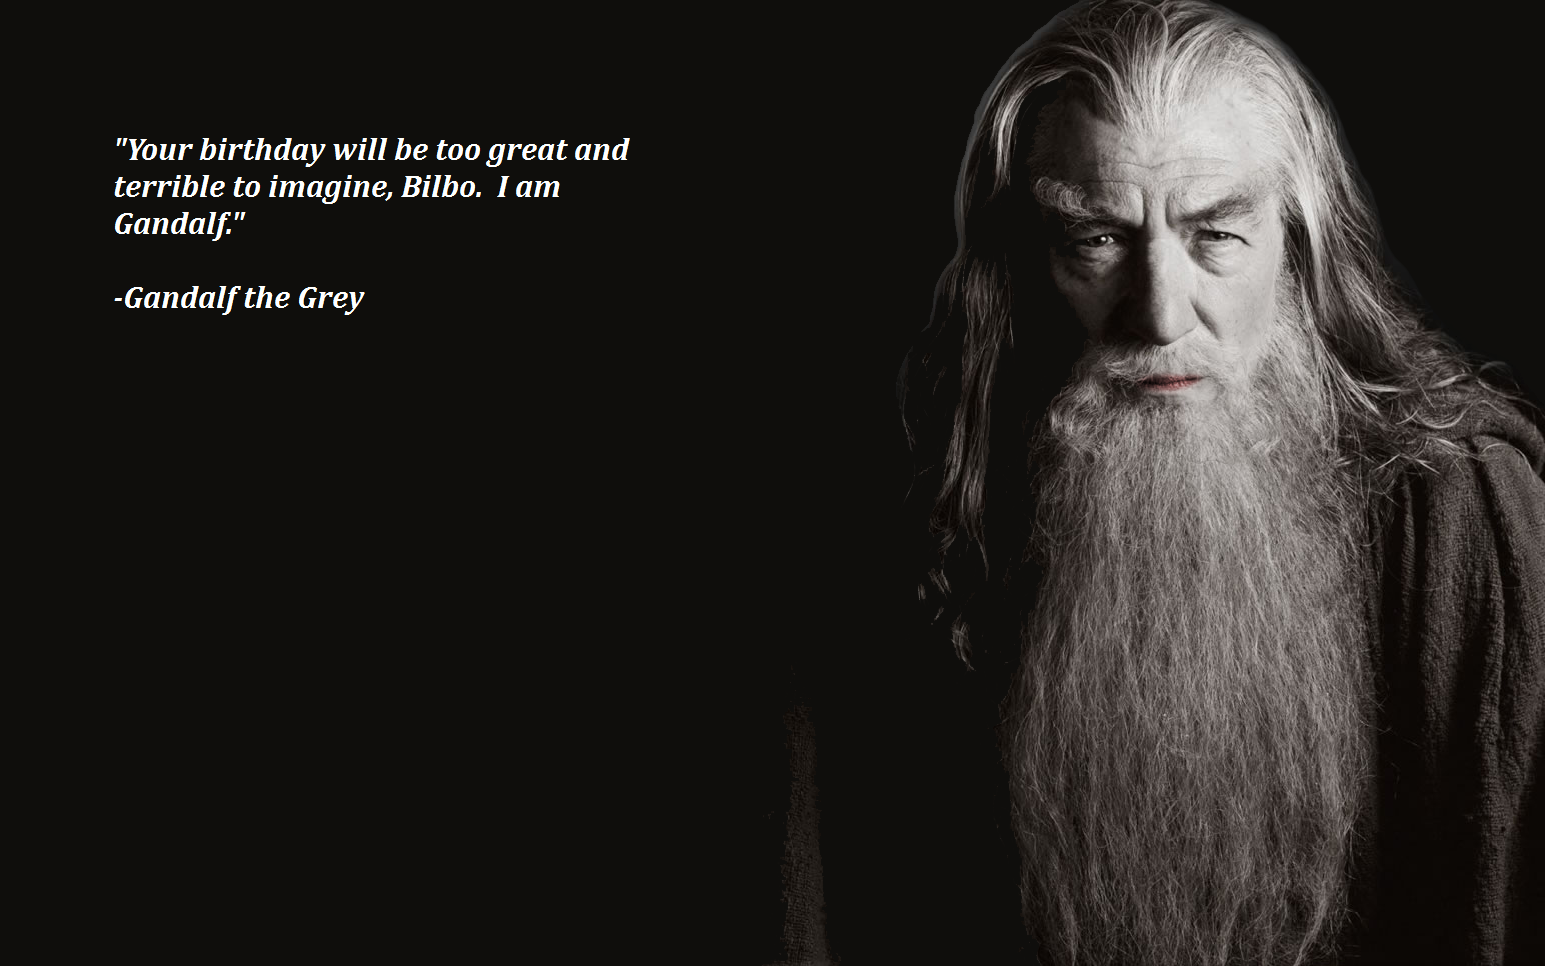 Gandalf The Wallpaper 1545x966 Gandalf The Lord Of The Rings Ian 1545x966